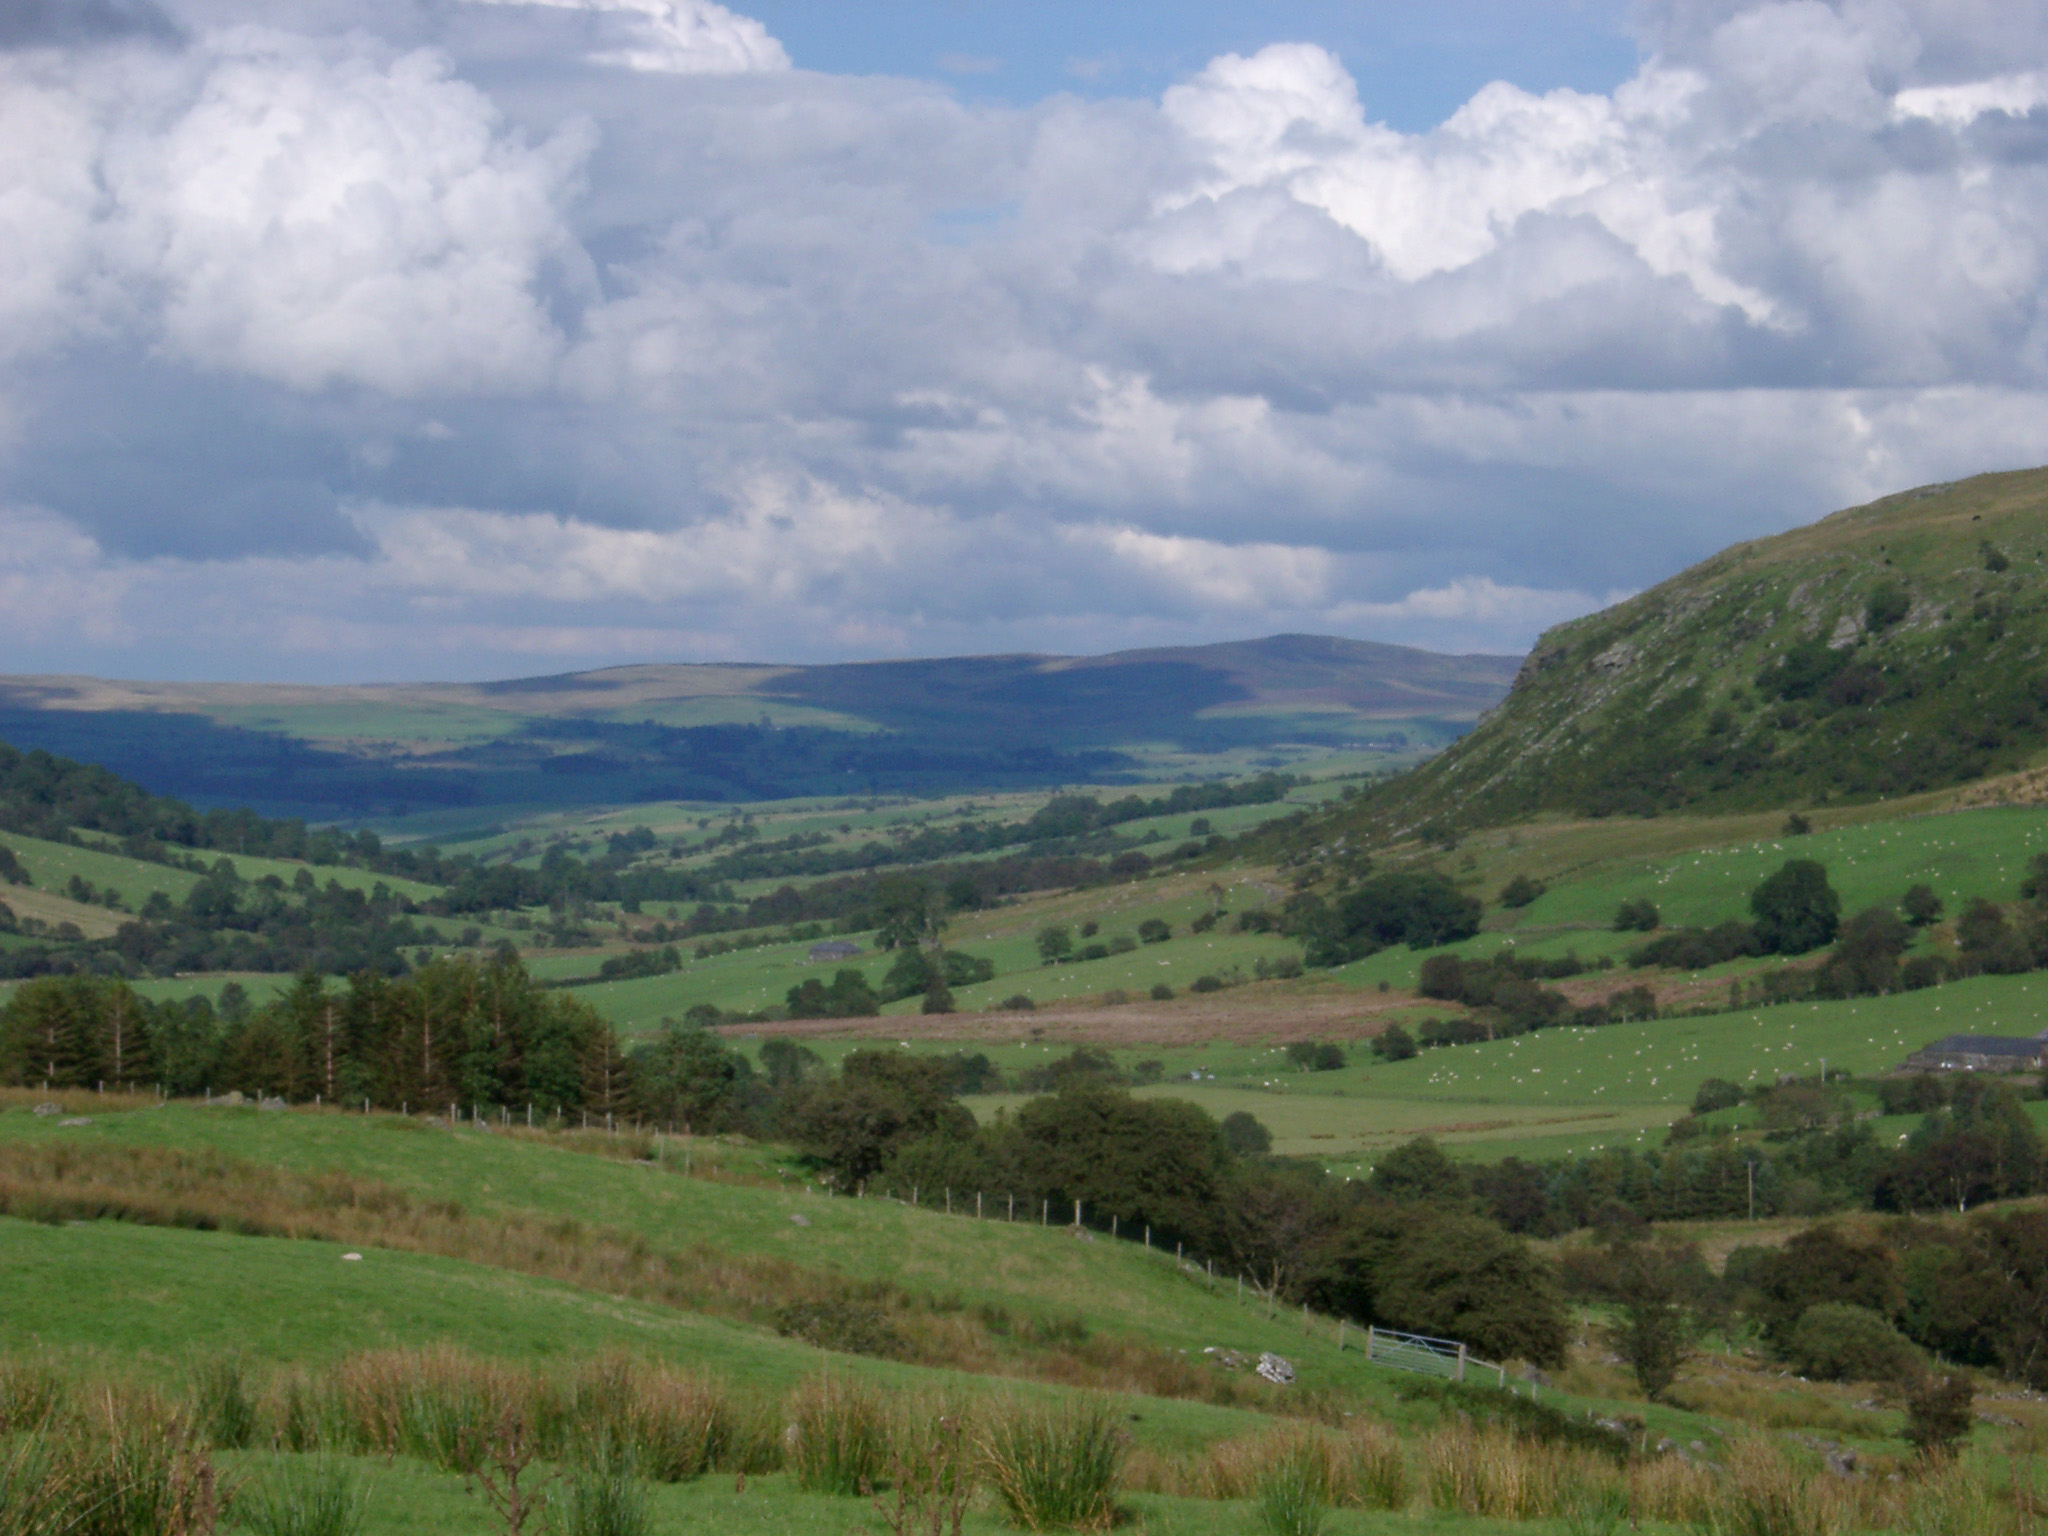 Scenic Lush Green Farmland and Rolling Welsh Hills with Puffy Clouds Overhead